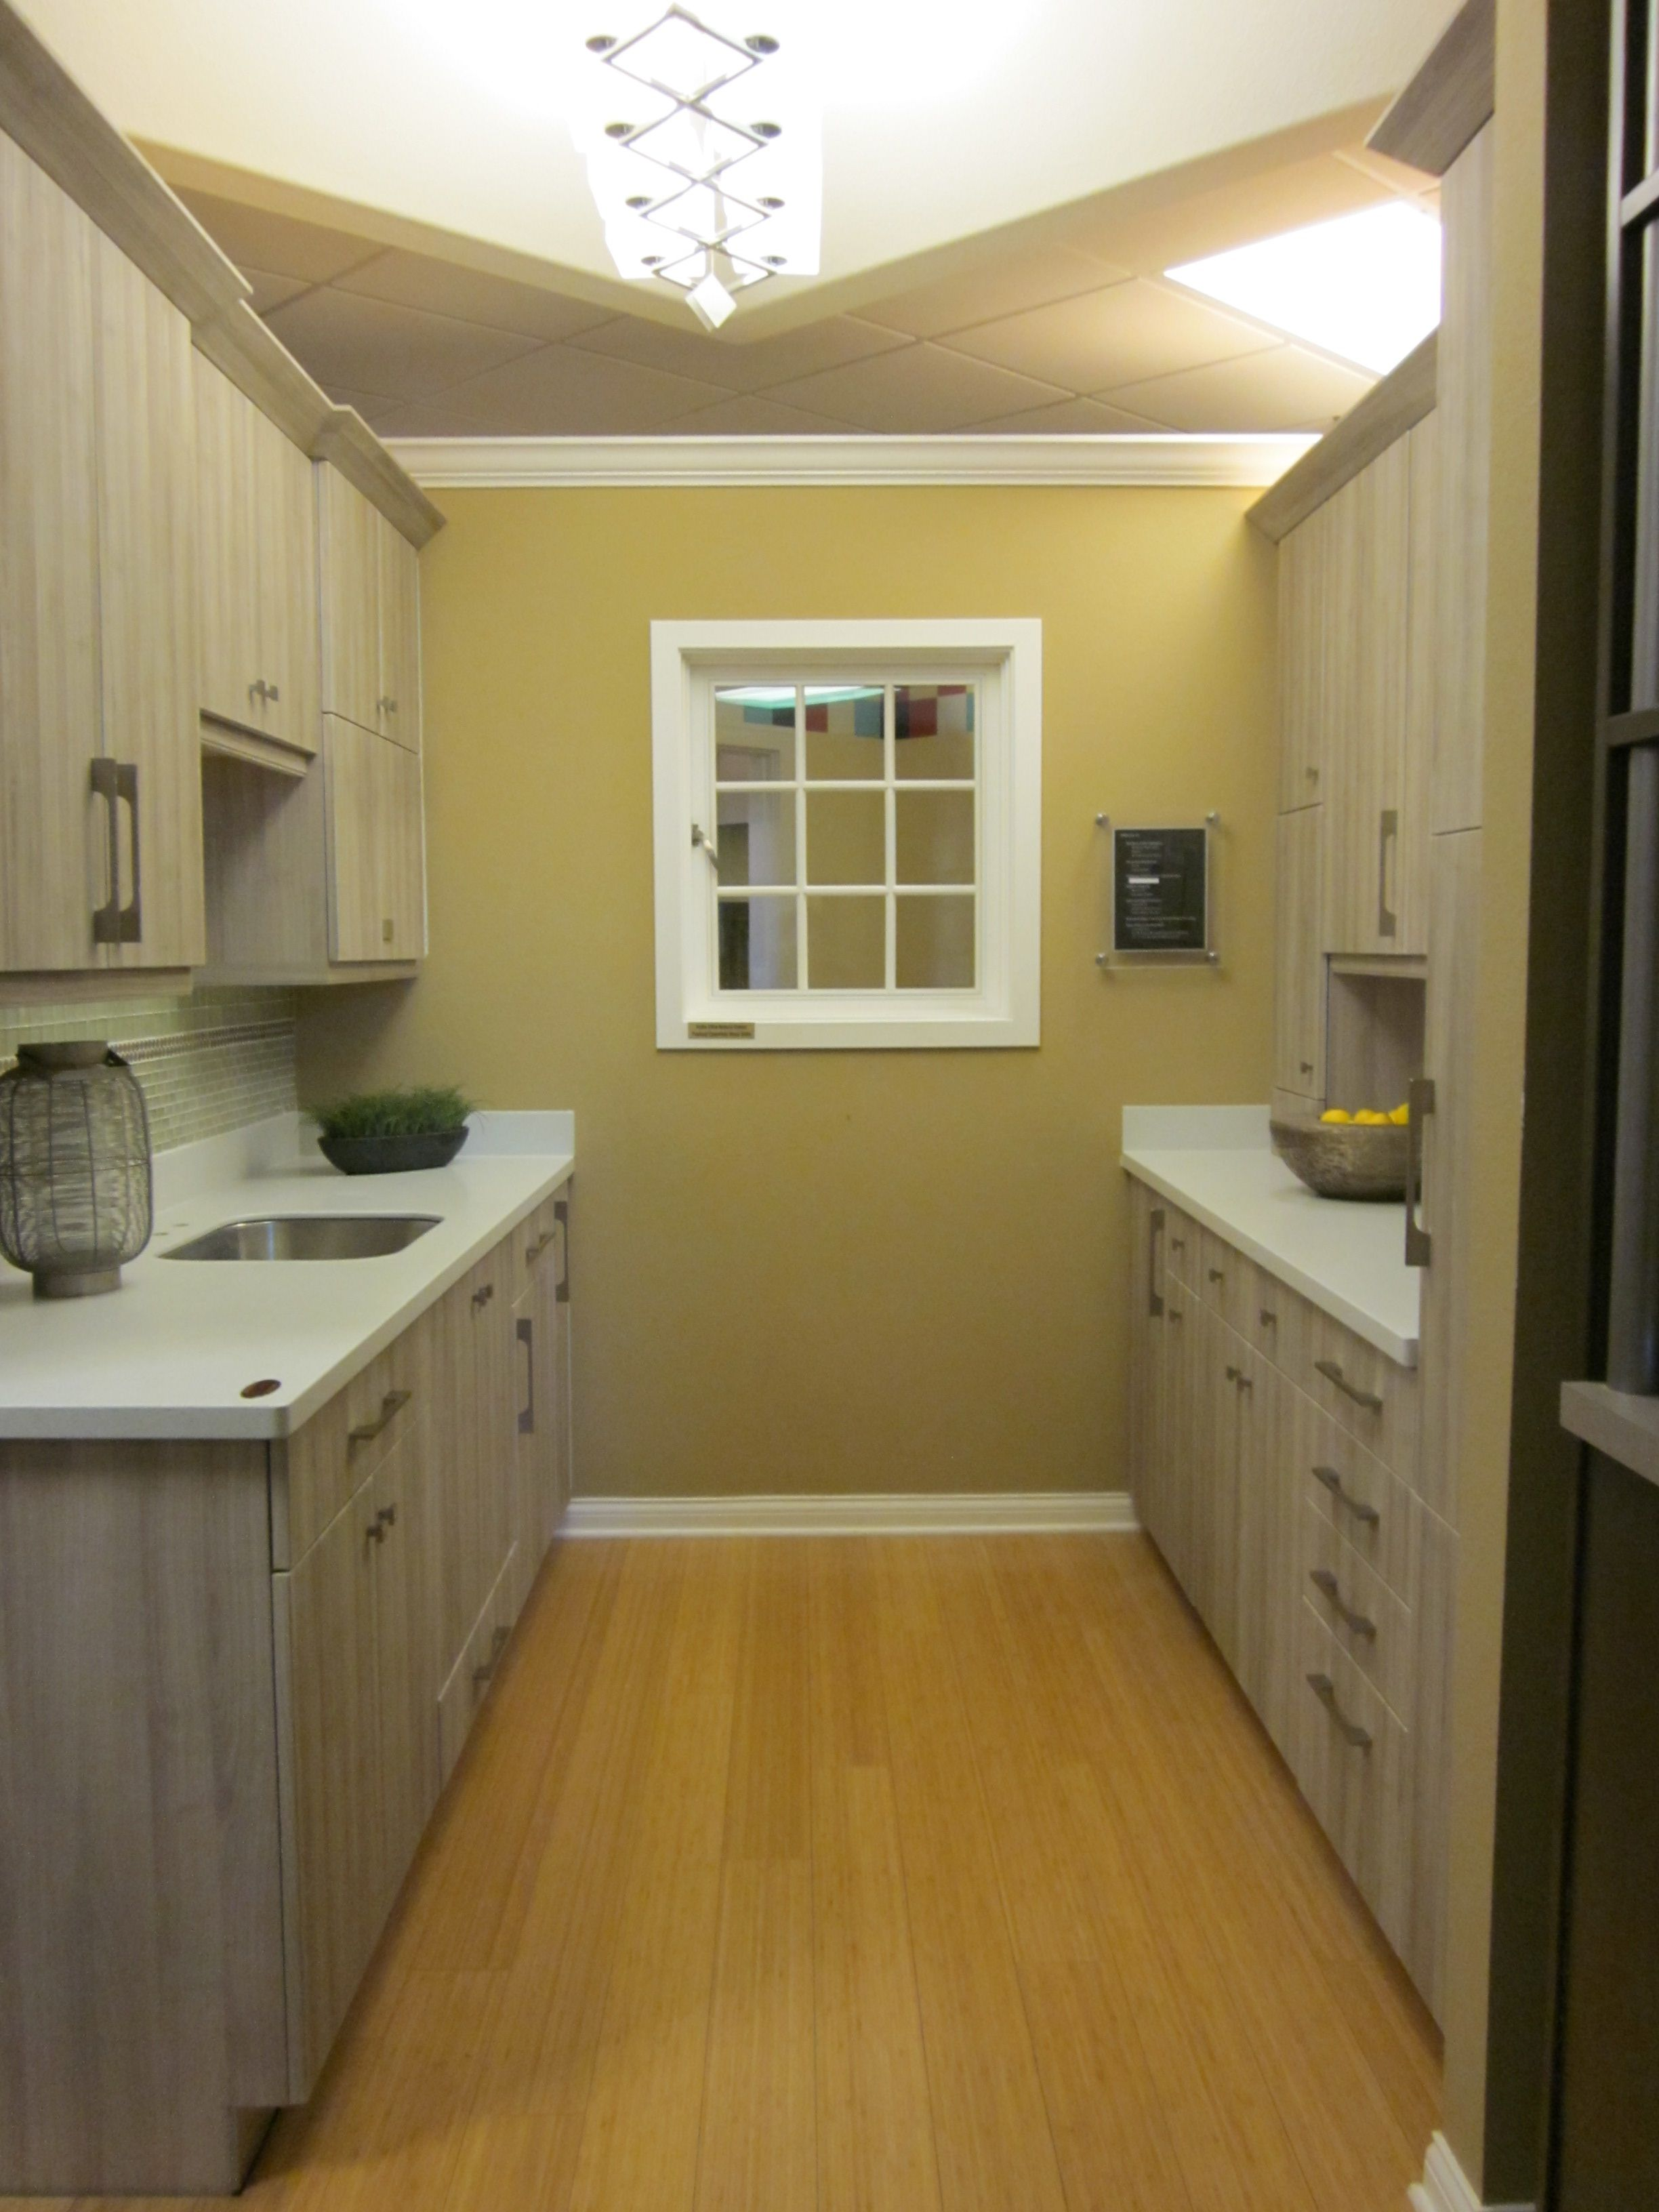 Dress up a galley kitchen with Kitchencraft cabinetry. This ...